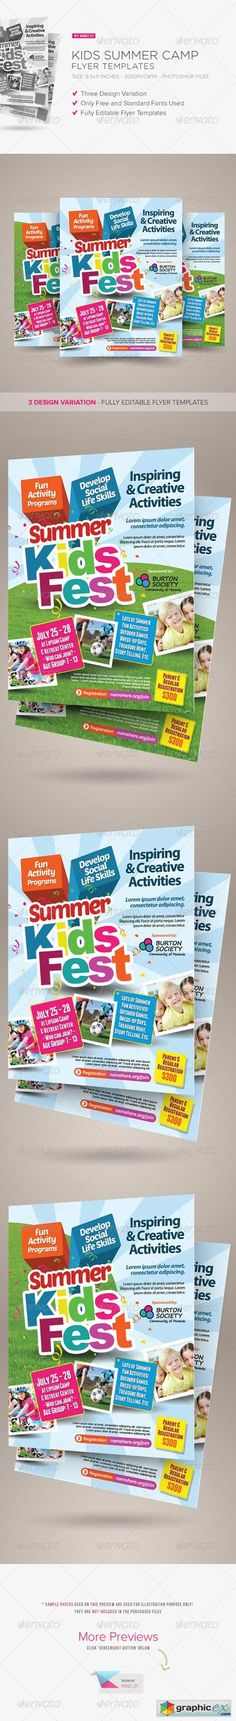 Kids Summer Camp Flyer Template Psd. Download Here: Https